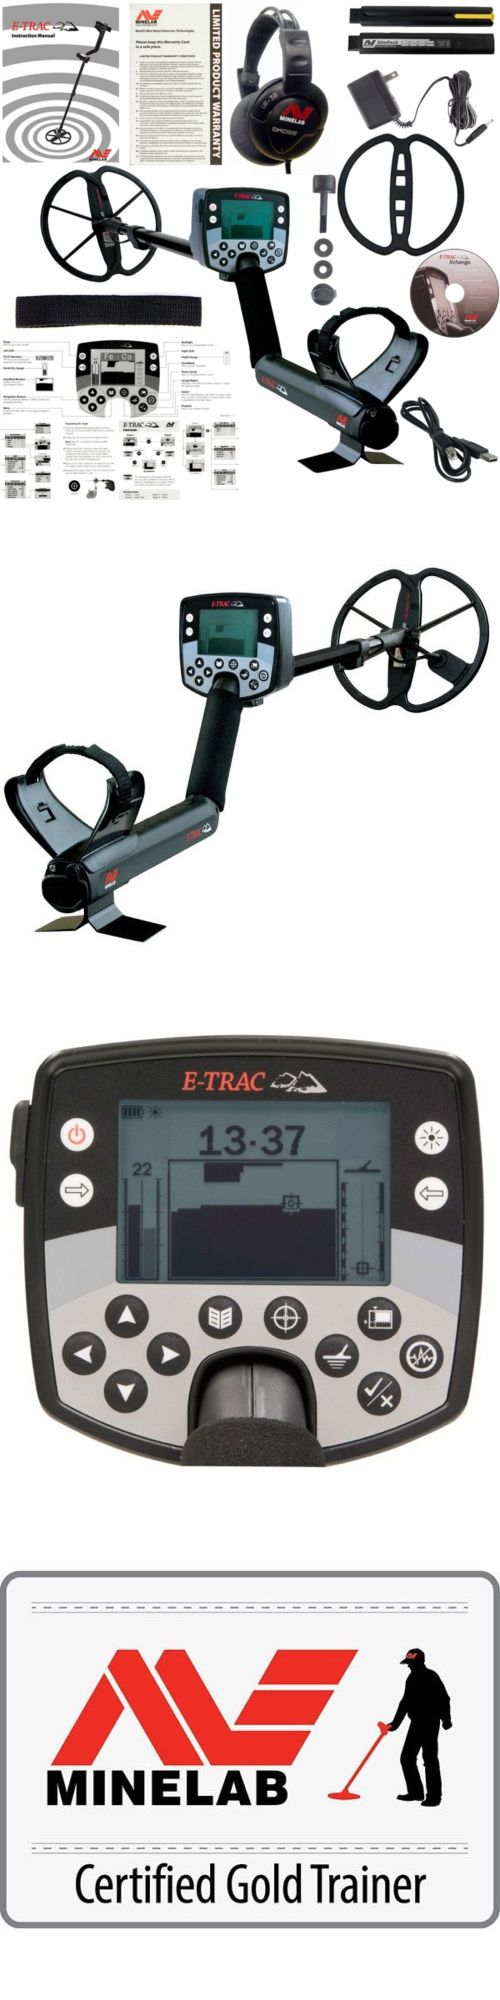 Metal Detectors: Minelab E-Trac Metal Detector W 11 Dd Search Coil And 3 Year Warranty 3228-0002 -> BUY IT NOW ONLY: $1549 on eBay!